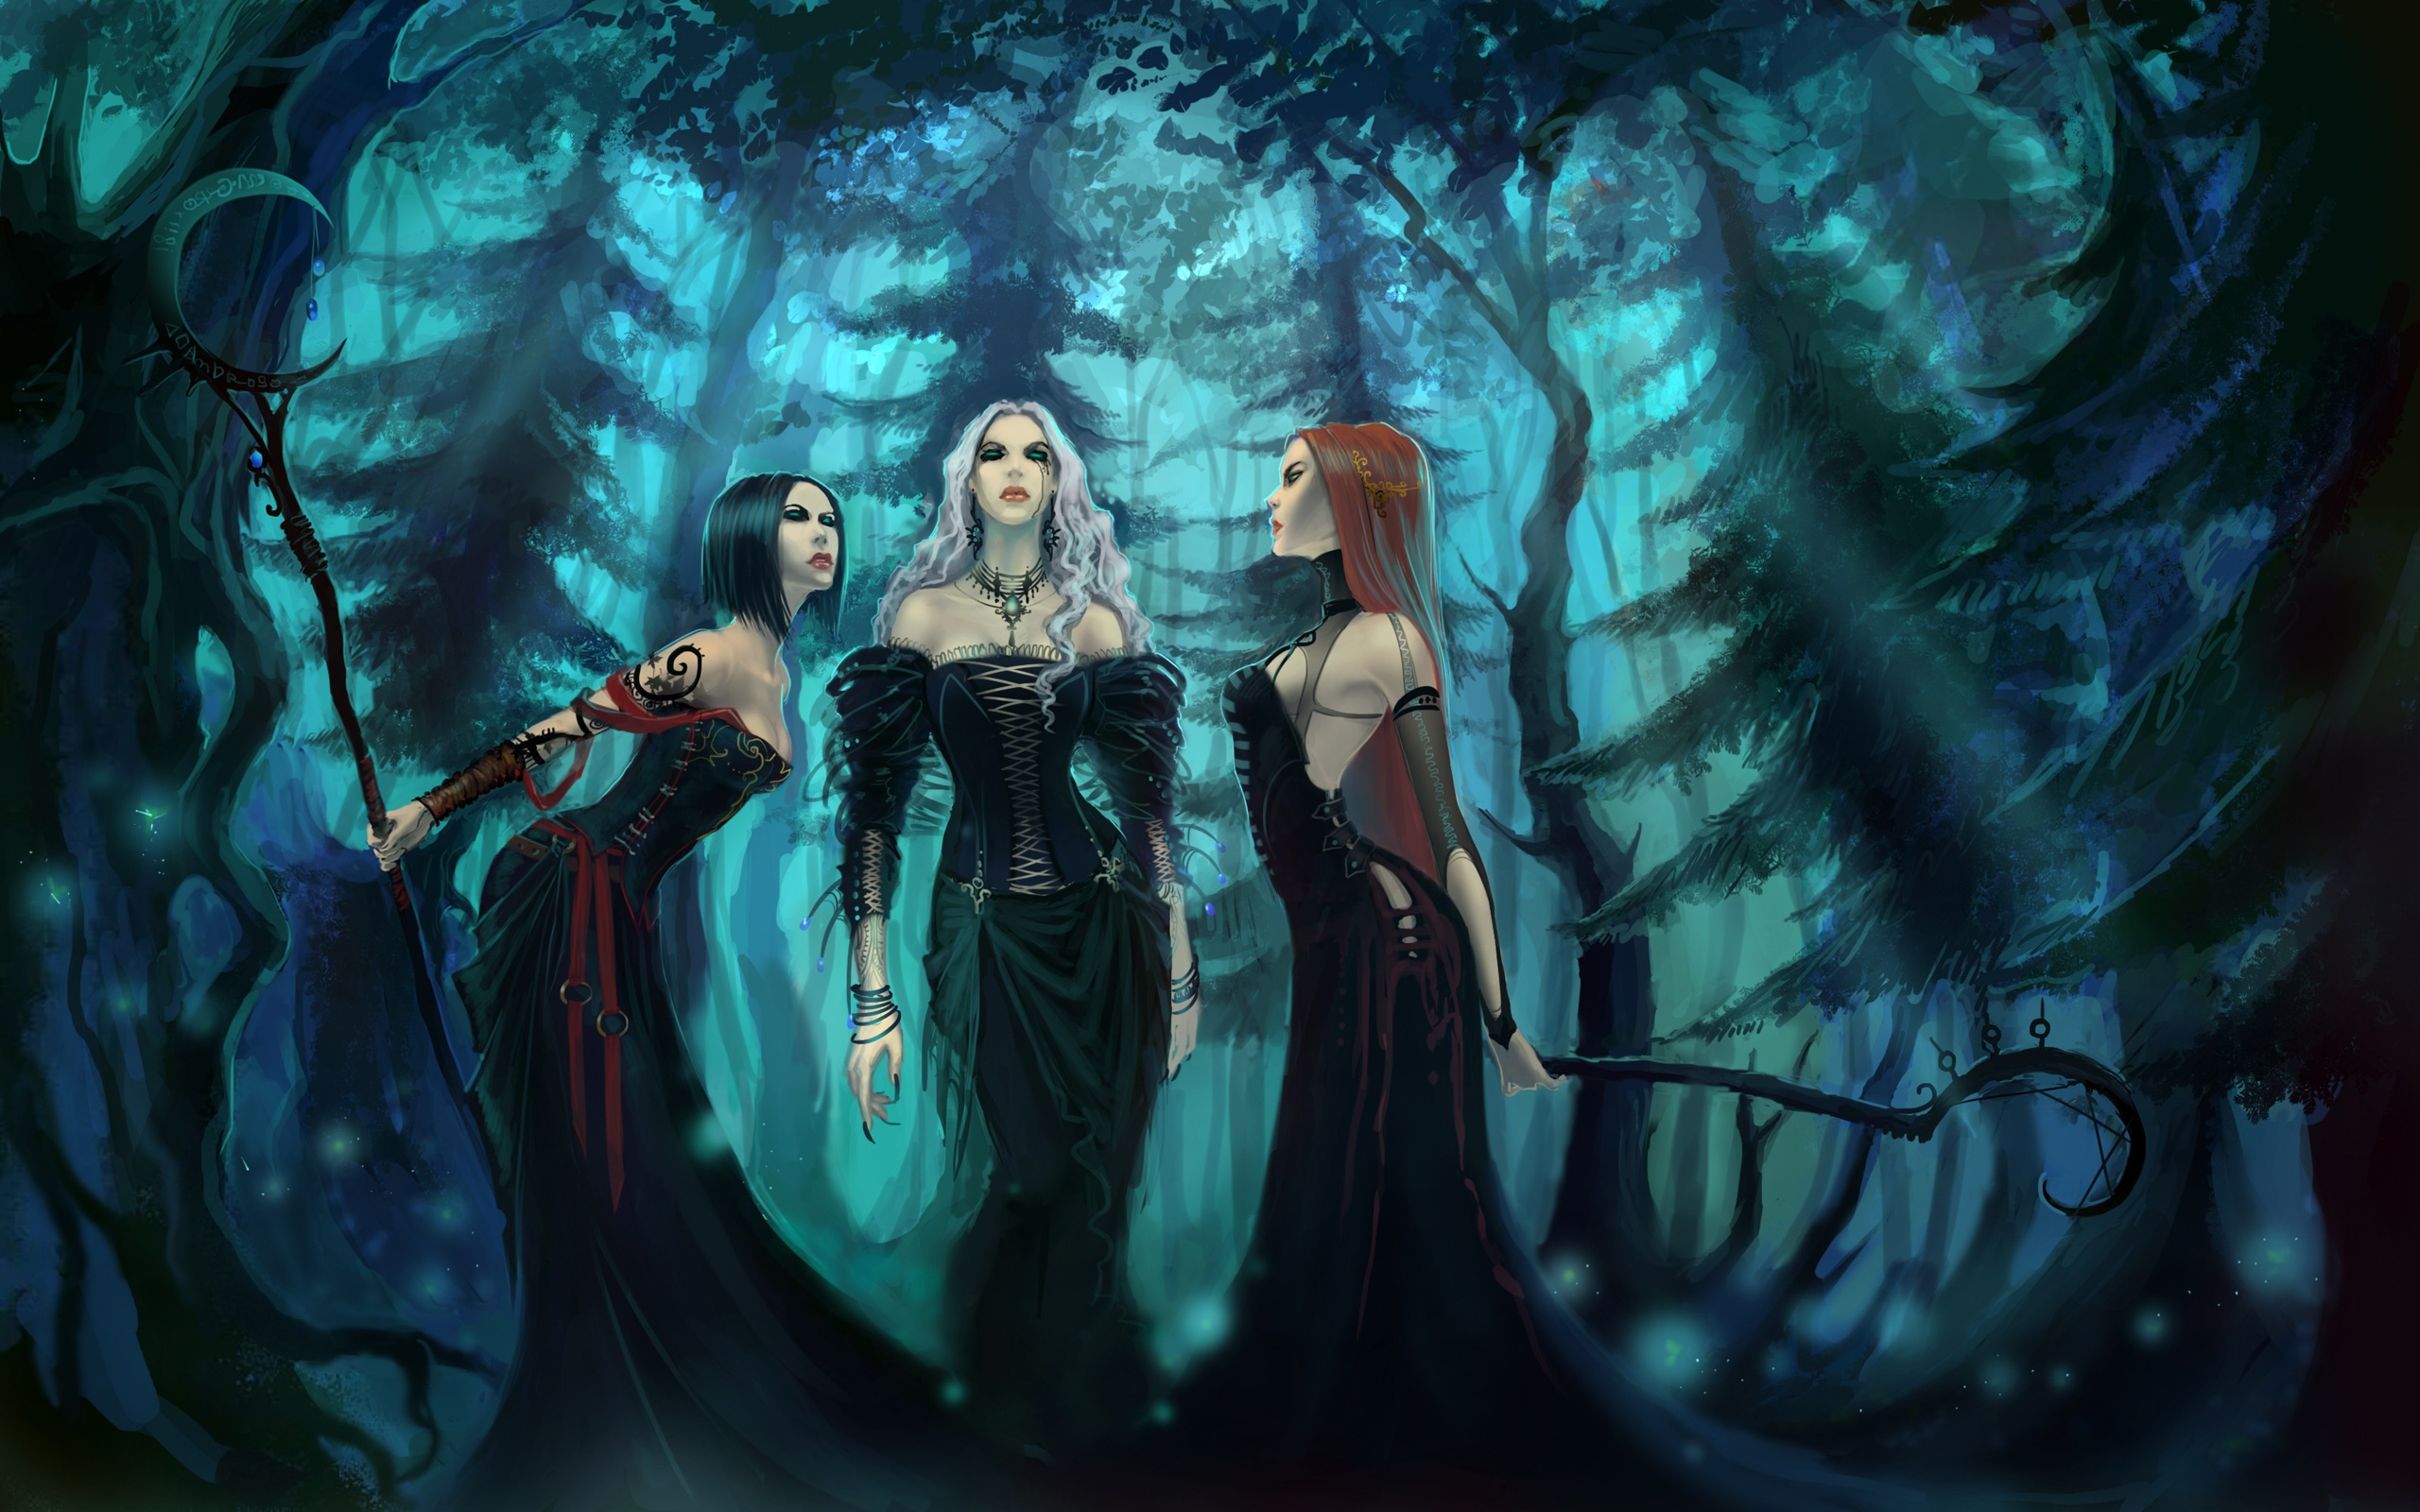 Free Hd Gothic Girls Wallpapers Free Hd Gothic Girls Wallpapers Wallpaper